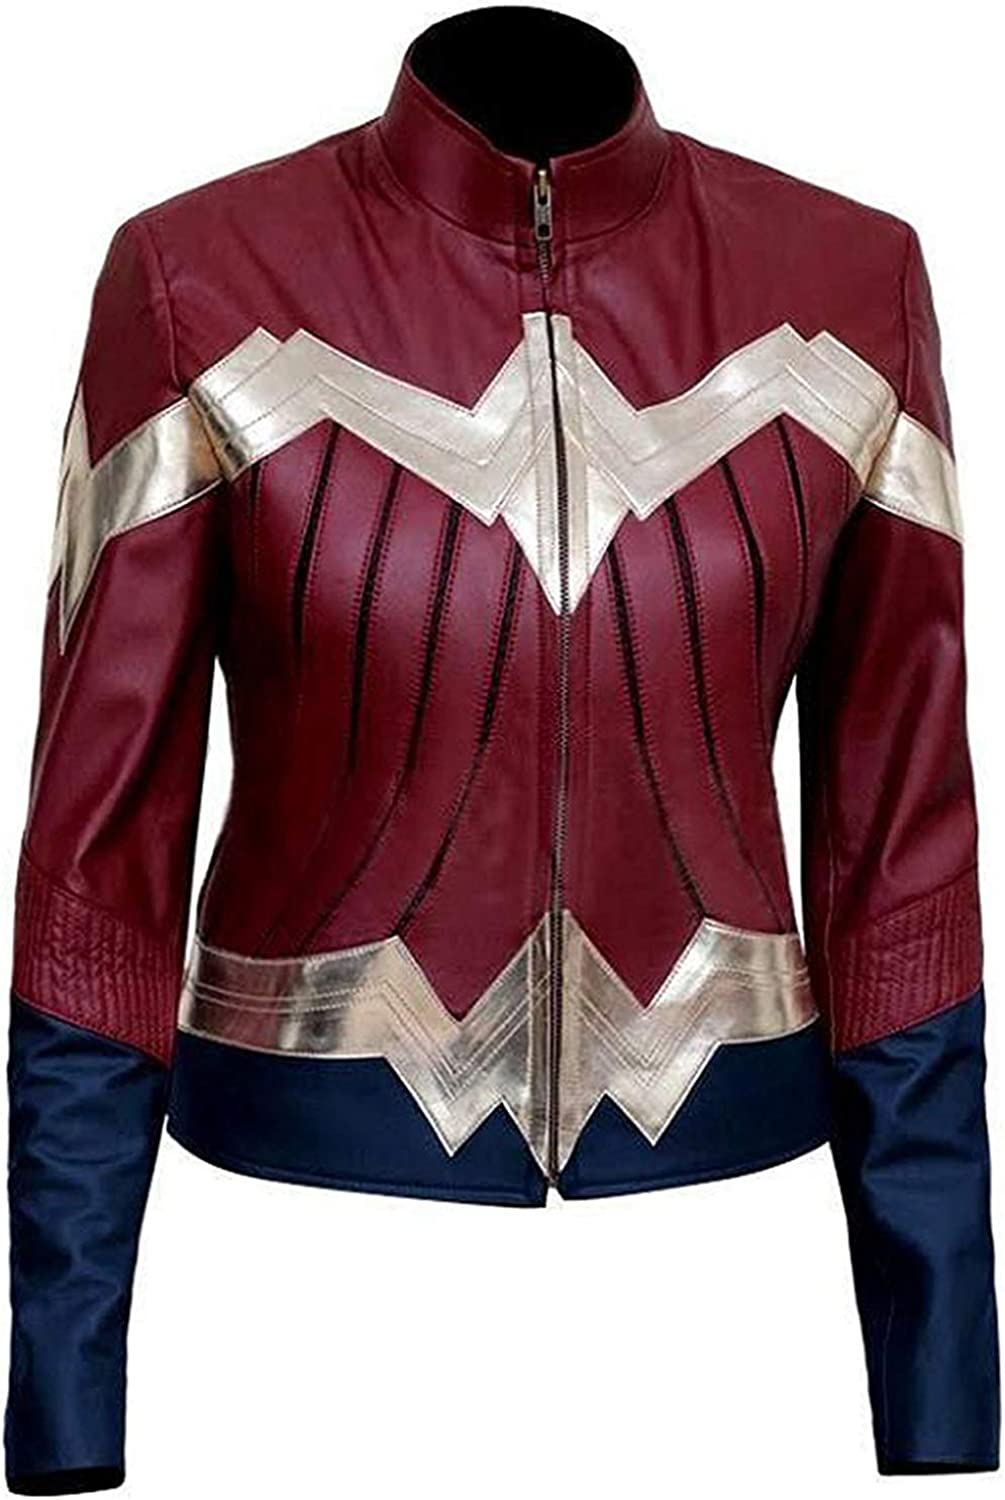 Alamodetrend Wonder Woman 2017 Diana Prince Jacket  Halloween Idea Maroon